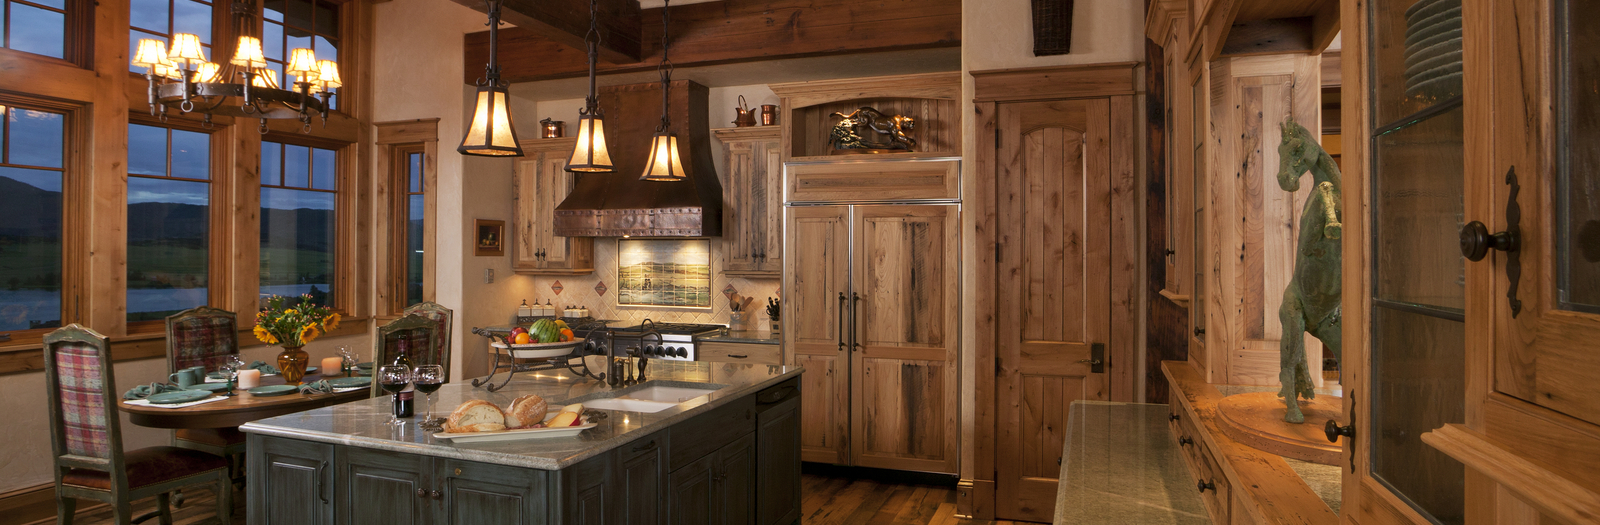 Lodge Kitchen with stained wood cabinet facade